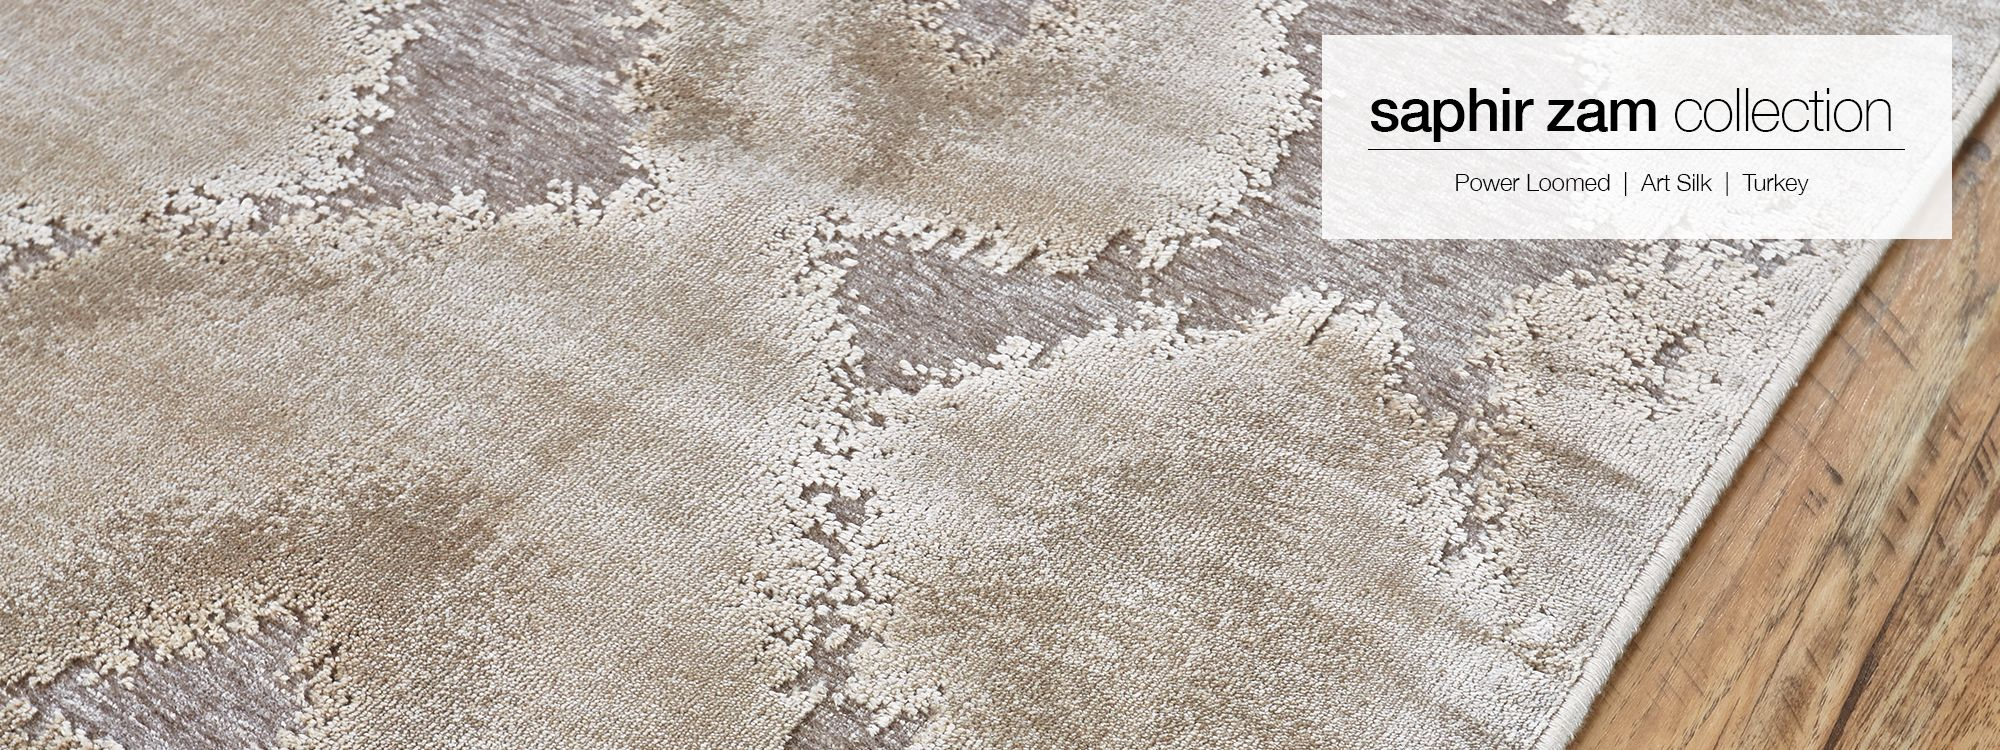 Saphir Zam Collection By Feizy Soothing Earth Tones Lend An Ethereal Feel To The